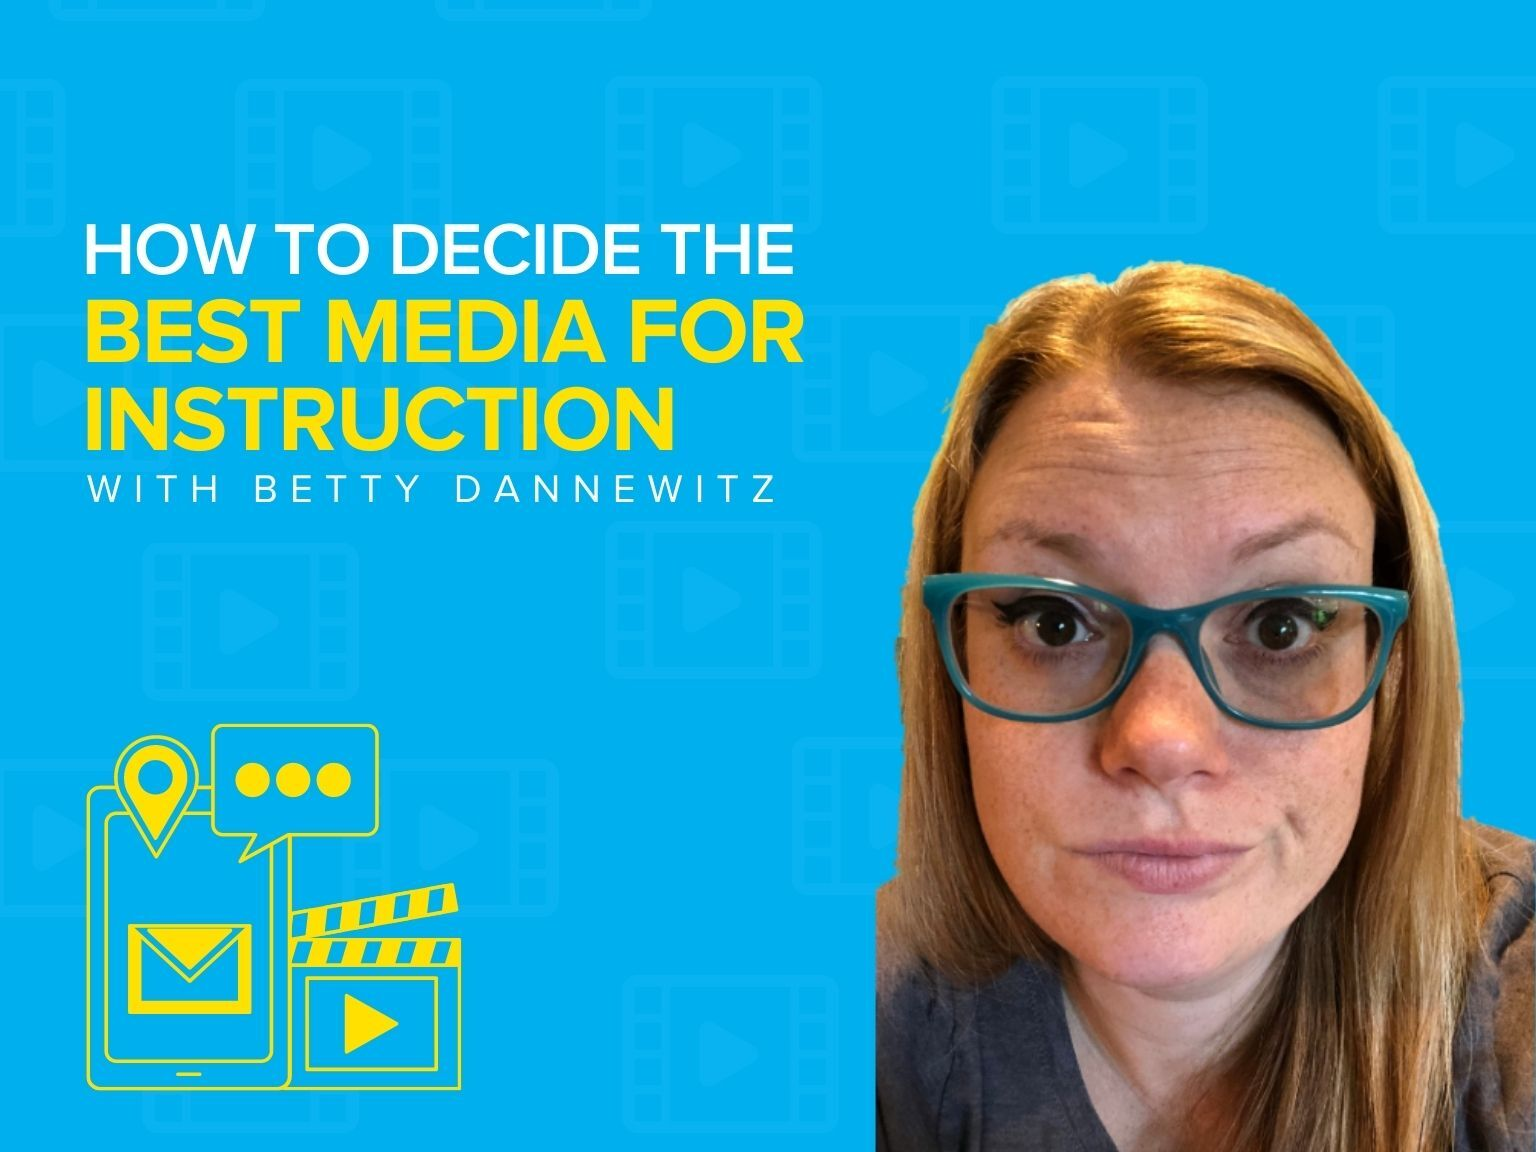 How to Decide the Best Media for Instruction with Betty Dannewitz